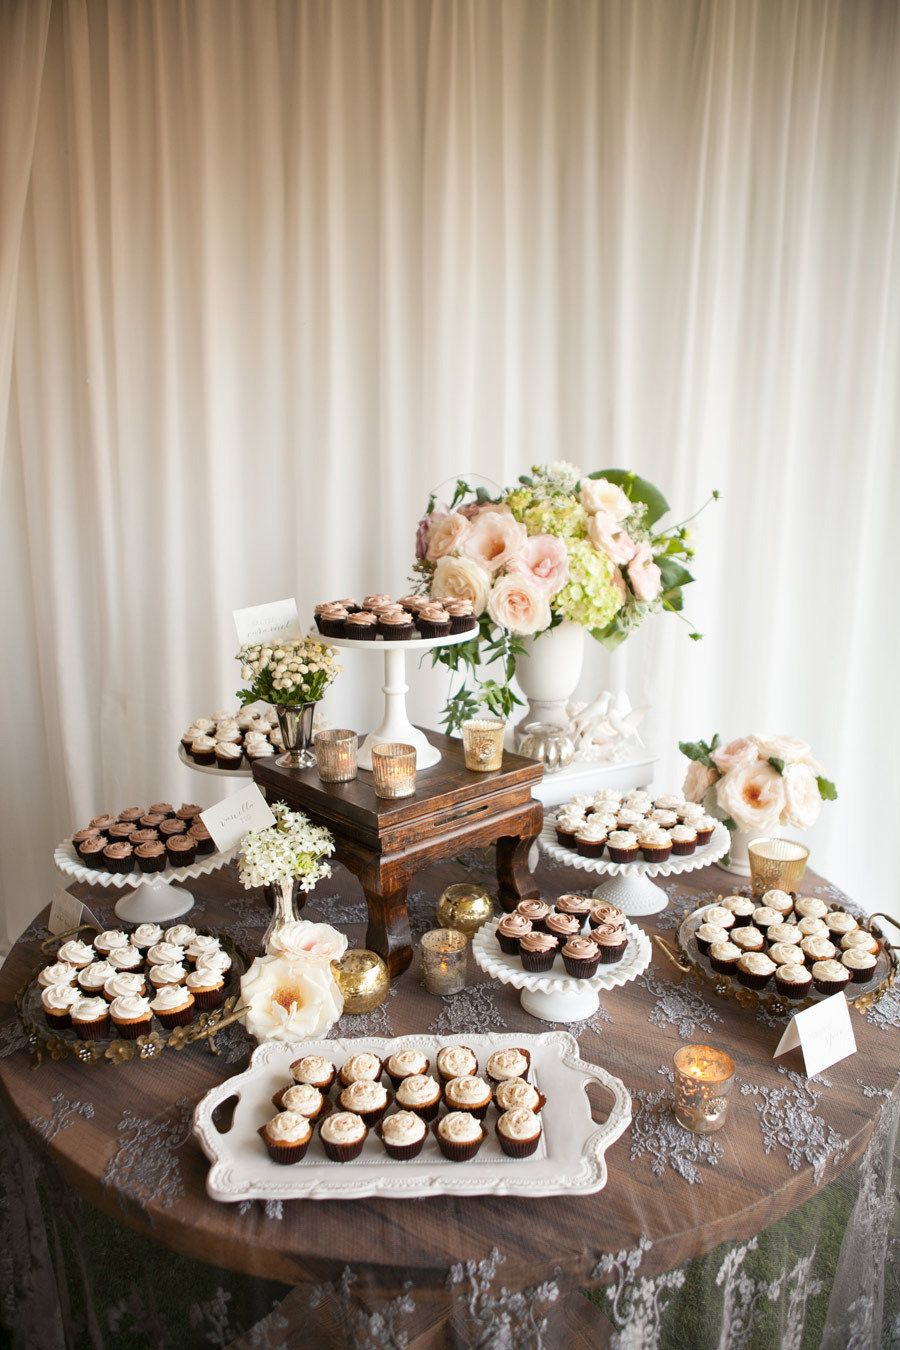 #dessert-table  Photography: Birds of a Feather - birdsofafeatherphoto.com/ Planning + Design: Amorology - amorologyweddings.com Floral Design: Twigg Botanicals - twiggbotanicals.com  Read More: http://www.stylemepretty.com/2013/07/15/rancho-santa-fe-wedding-from-birds-of-a-feather-amorology/